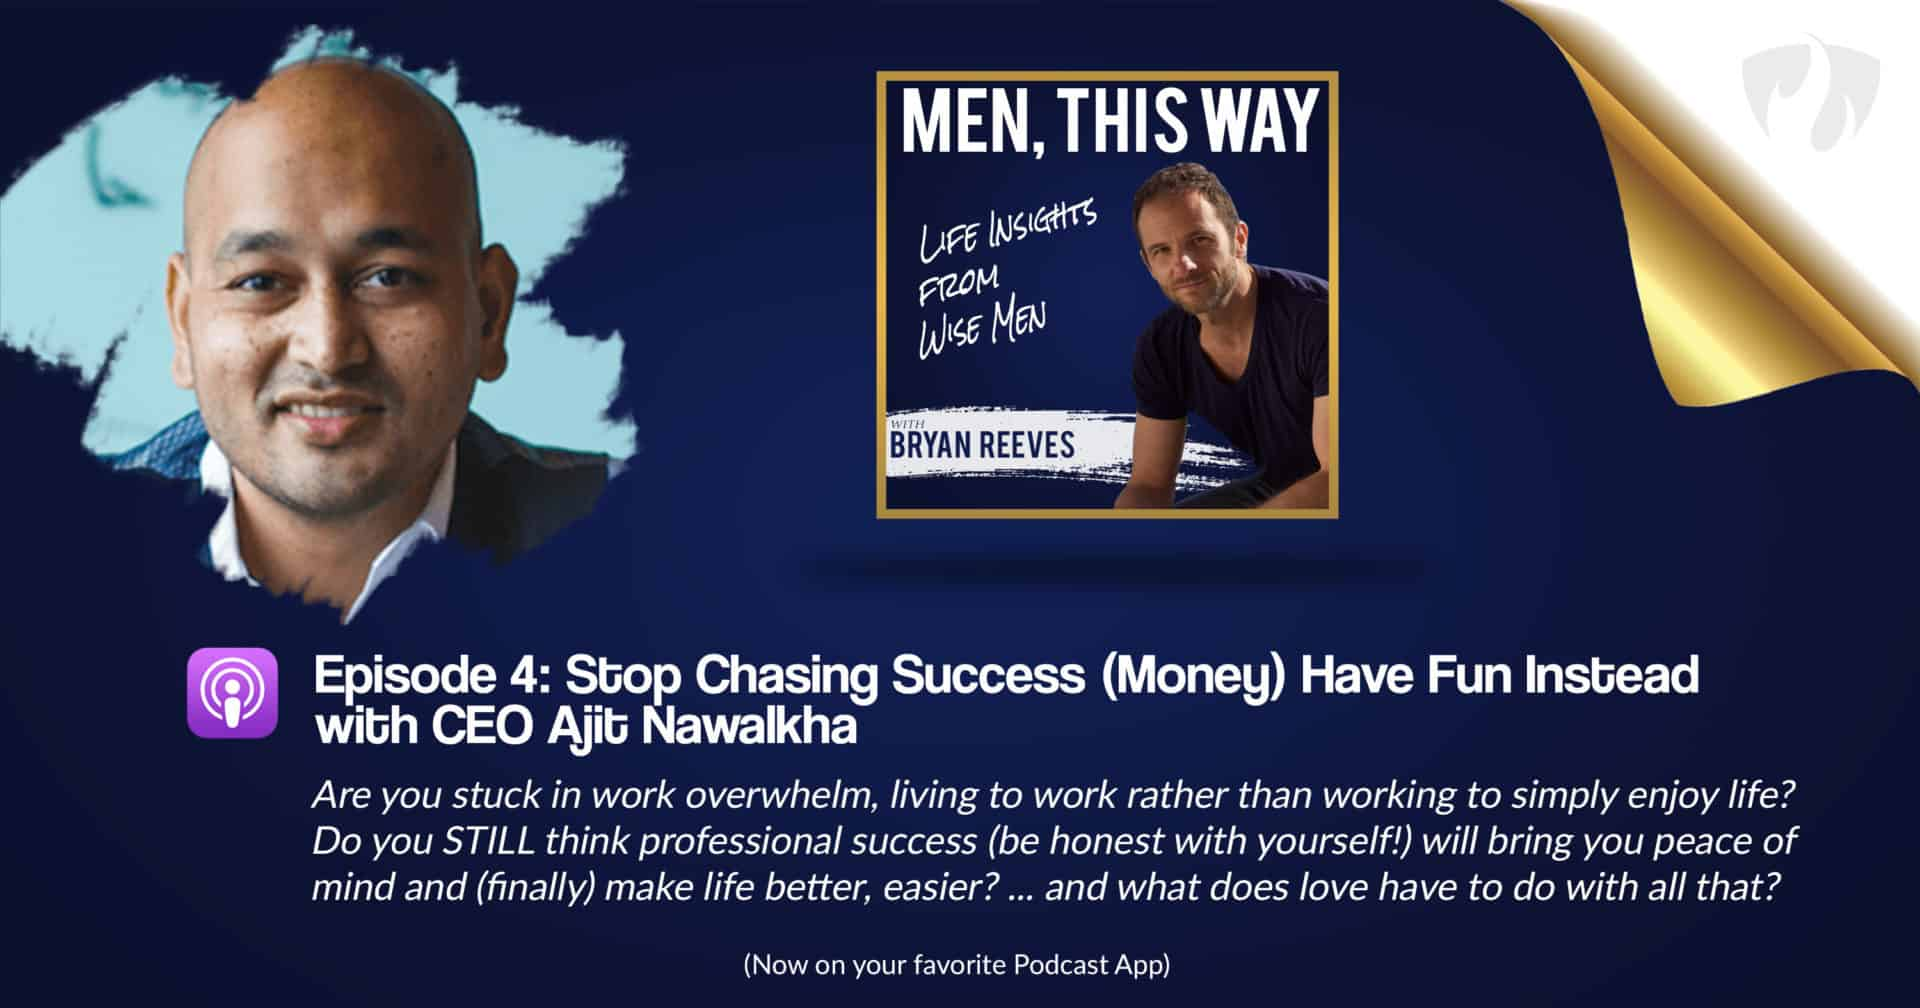 Men This Way GUEST Banner Ajit Nawalkha